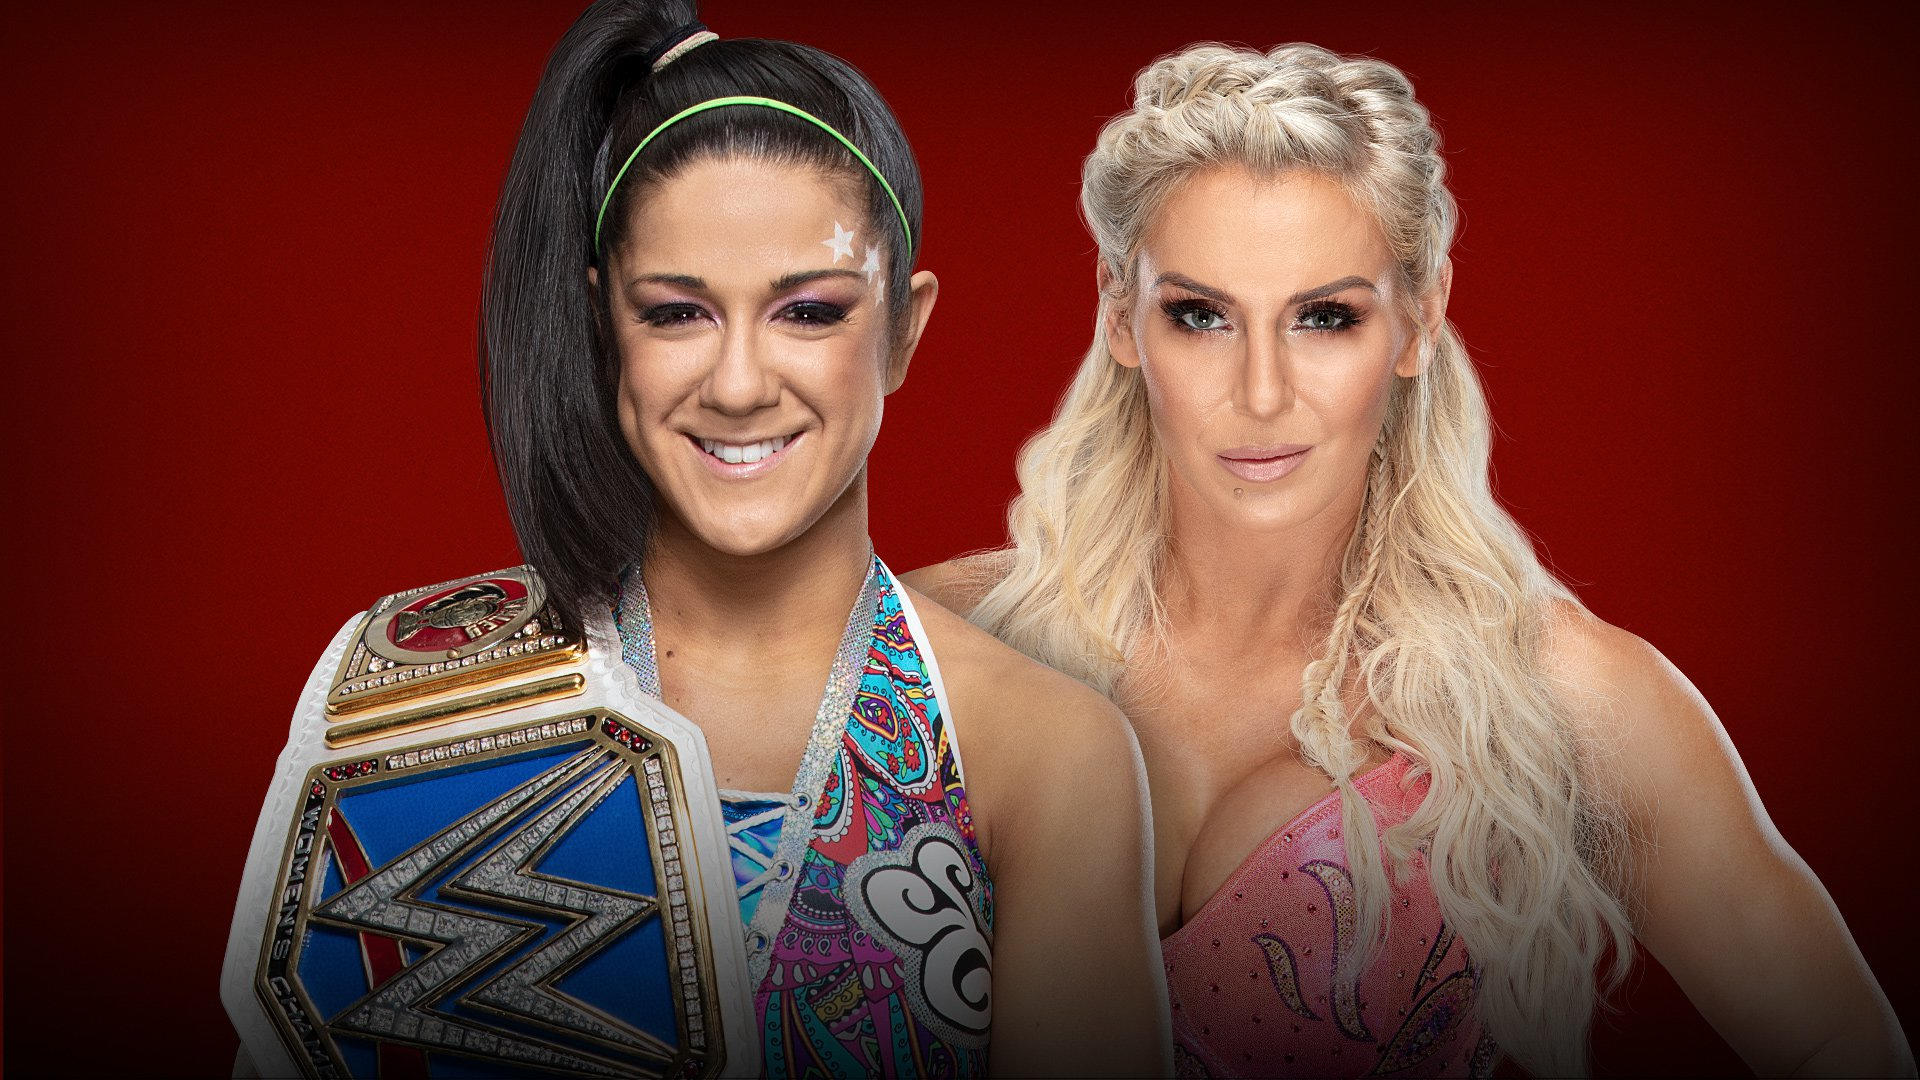 Bayley Charlotte Flair Hell in a Cell 2019